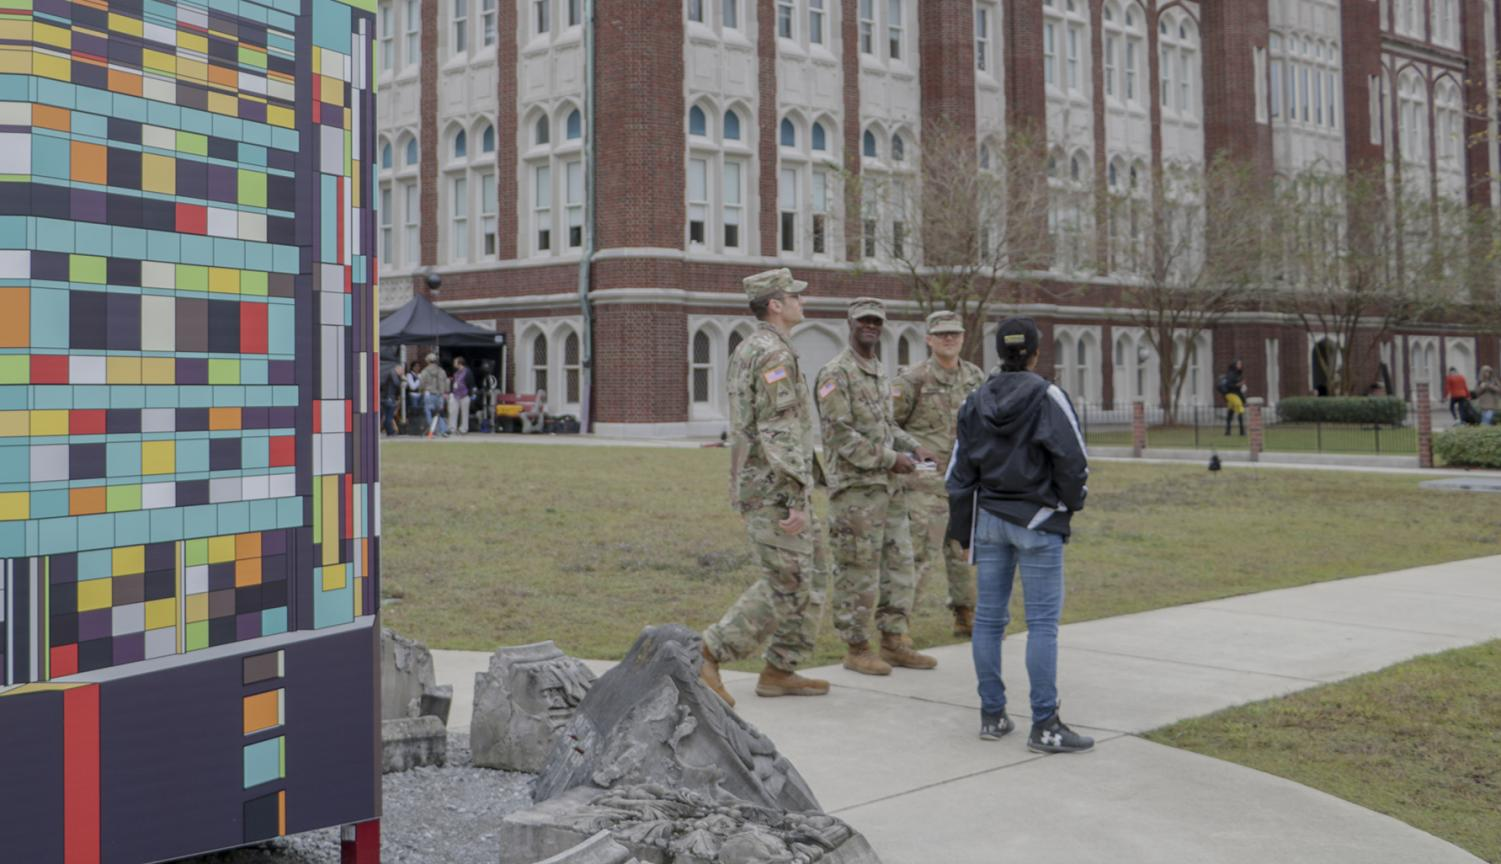 A commercial production filming on campus redesigns a Loyola sign for their set on Nov. 8 2019. The production sparked controversy when students and faculty reported hearing simulated gunshots. Hannah Renton/The Maroon. Photo credit: Hannah Renton